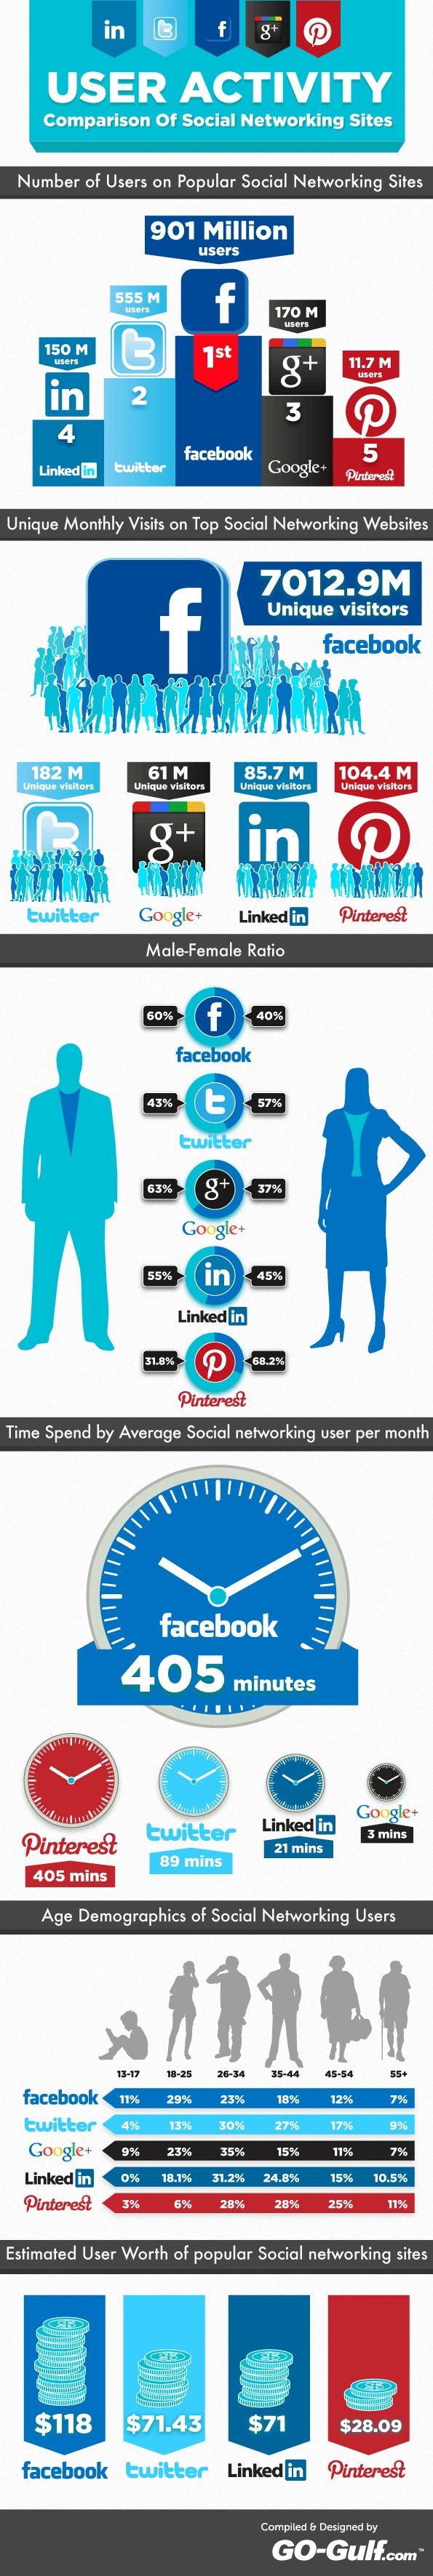 #Facebook, #Twitter, #Google+, #Pinterest: The Users Of Social Media: User Activities, Social Network, Web Design, Socialnetwork, Social Media, Network Site, Social Networks, Infographic, Socialmedia